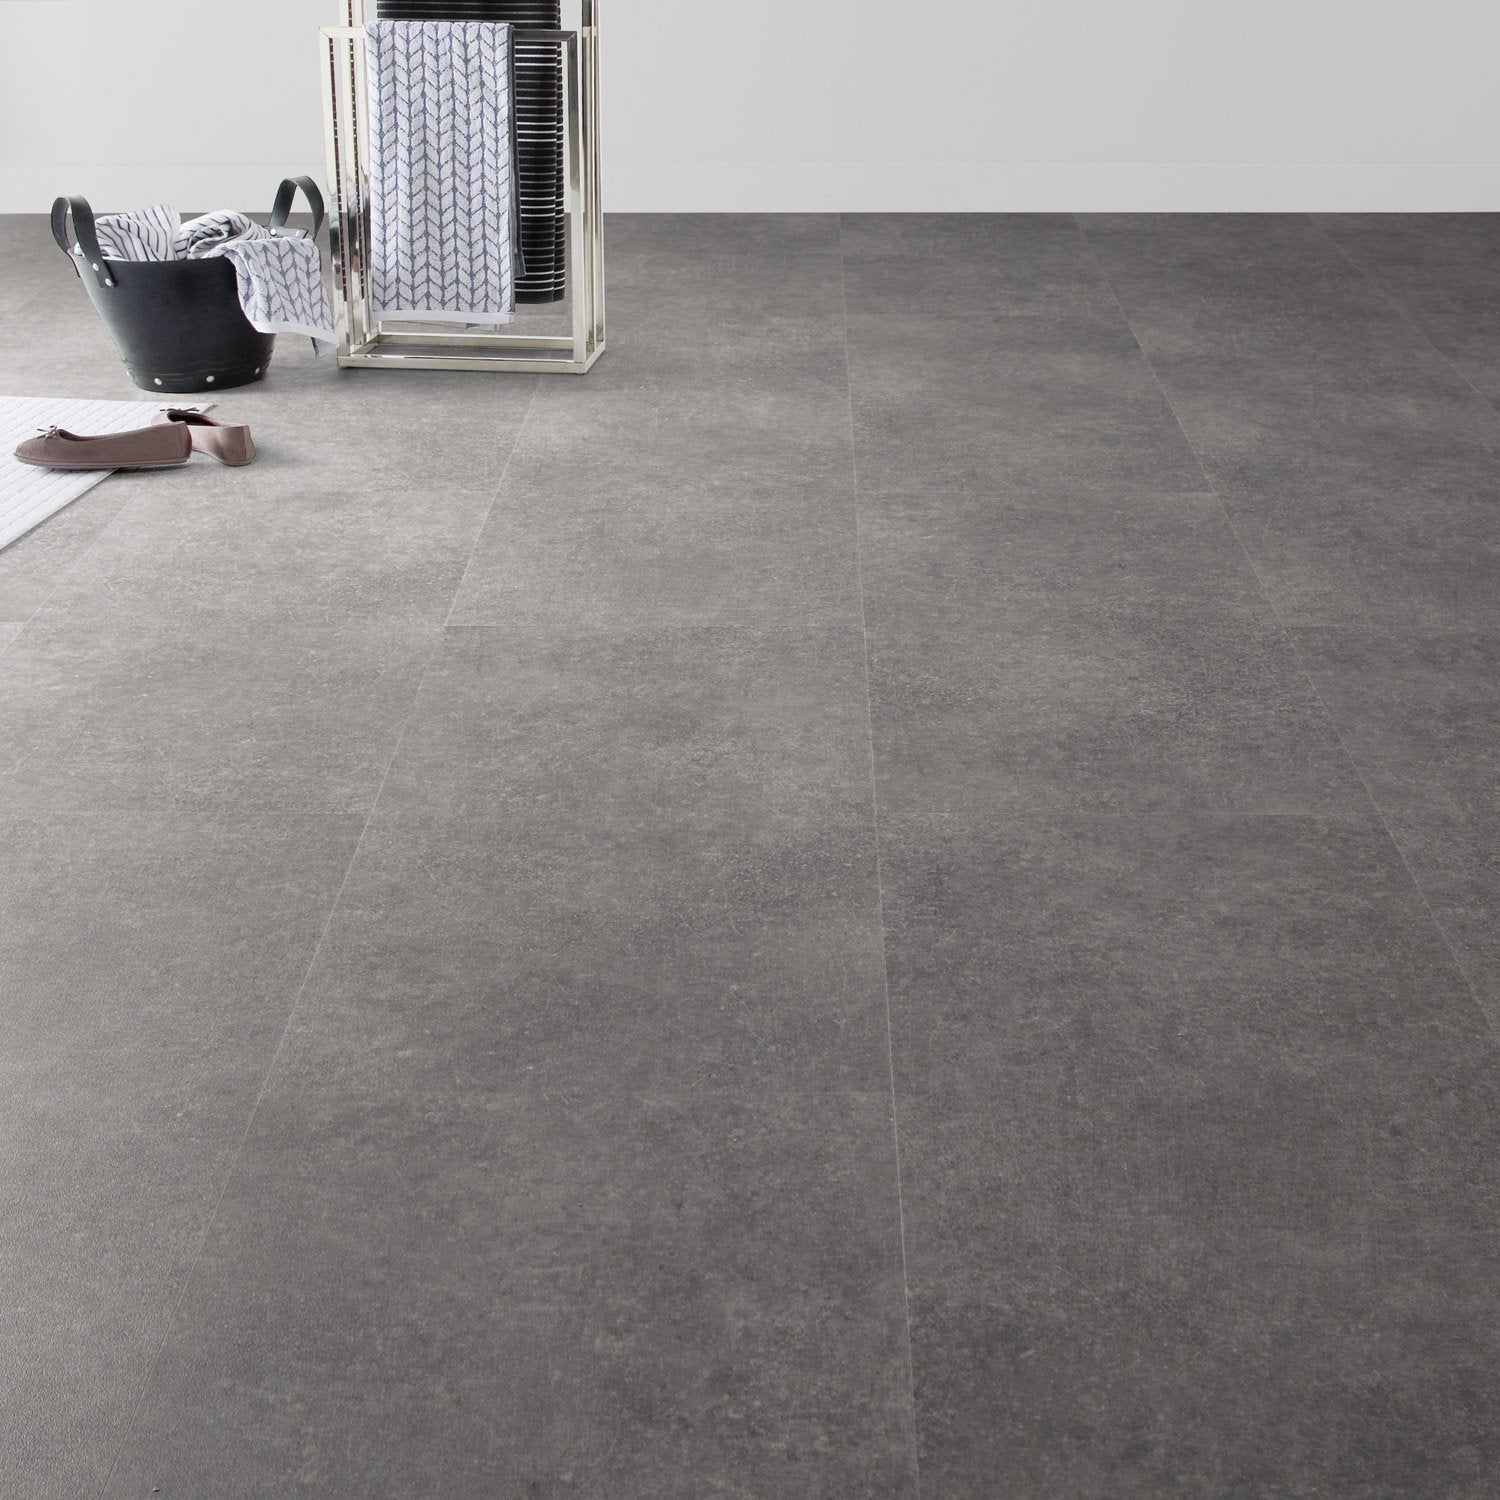 Dalle pvc clipsable gris m tal effet b ton clic moods for Dalle pvc sur carrelage